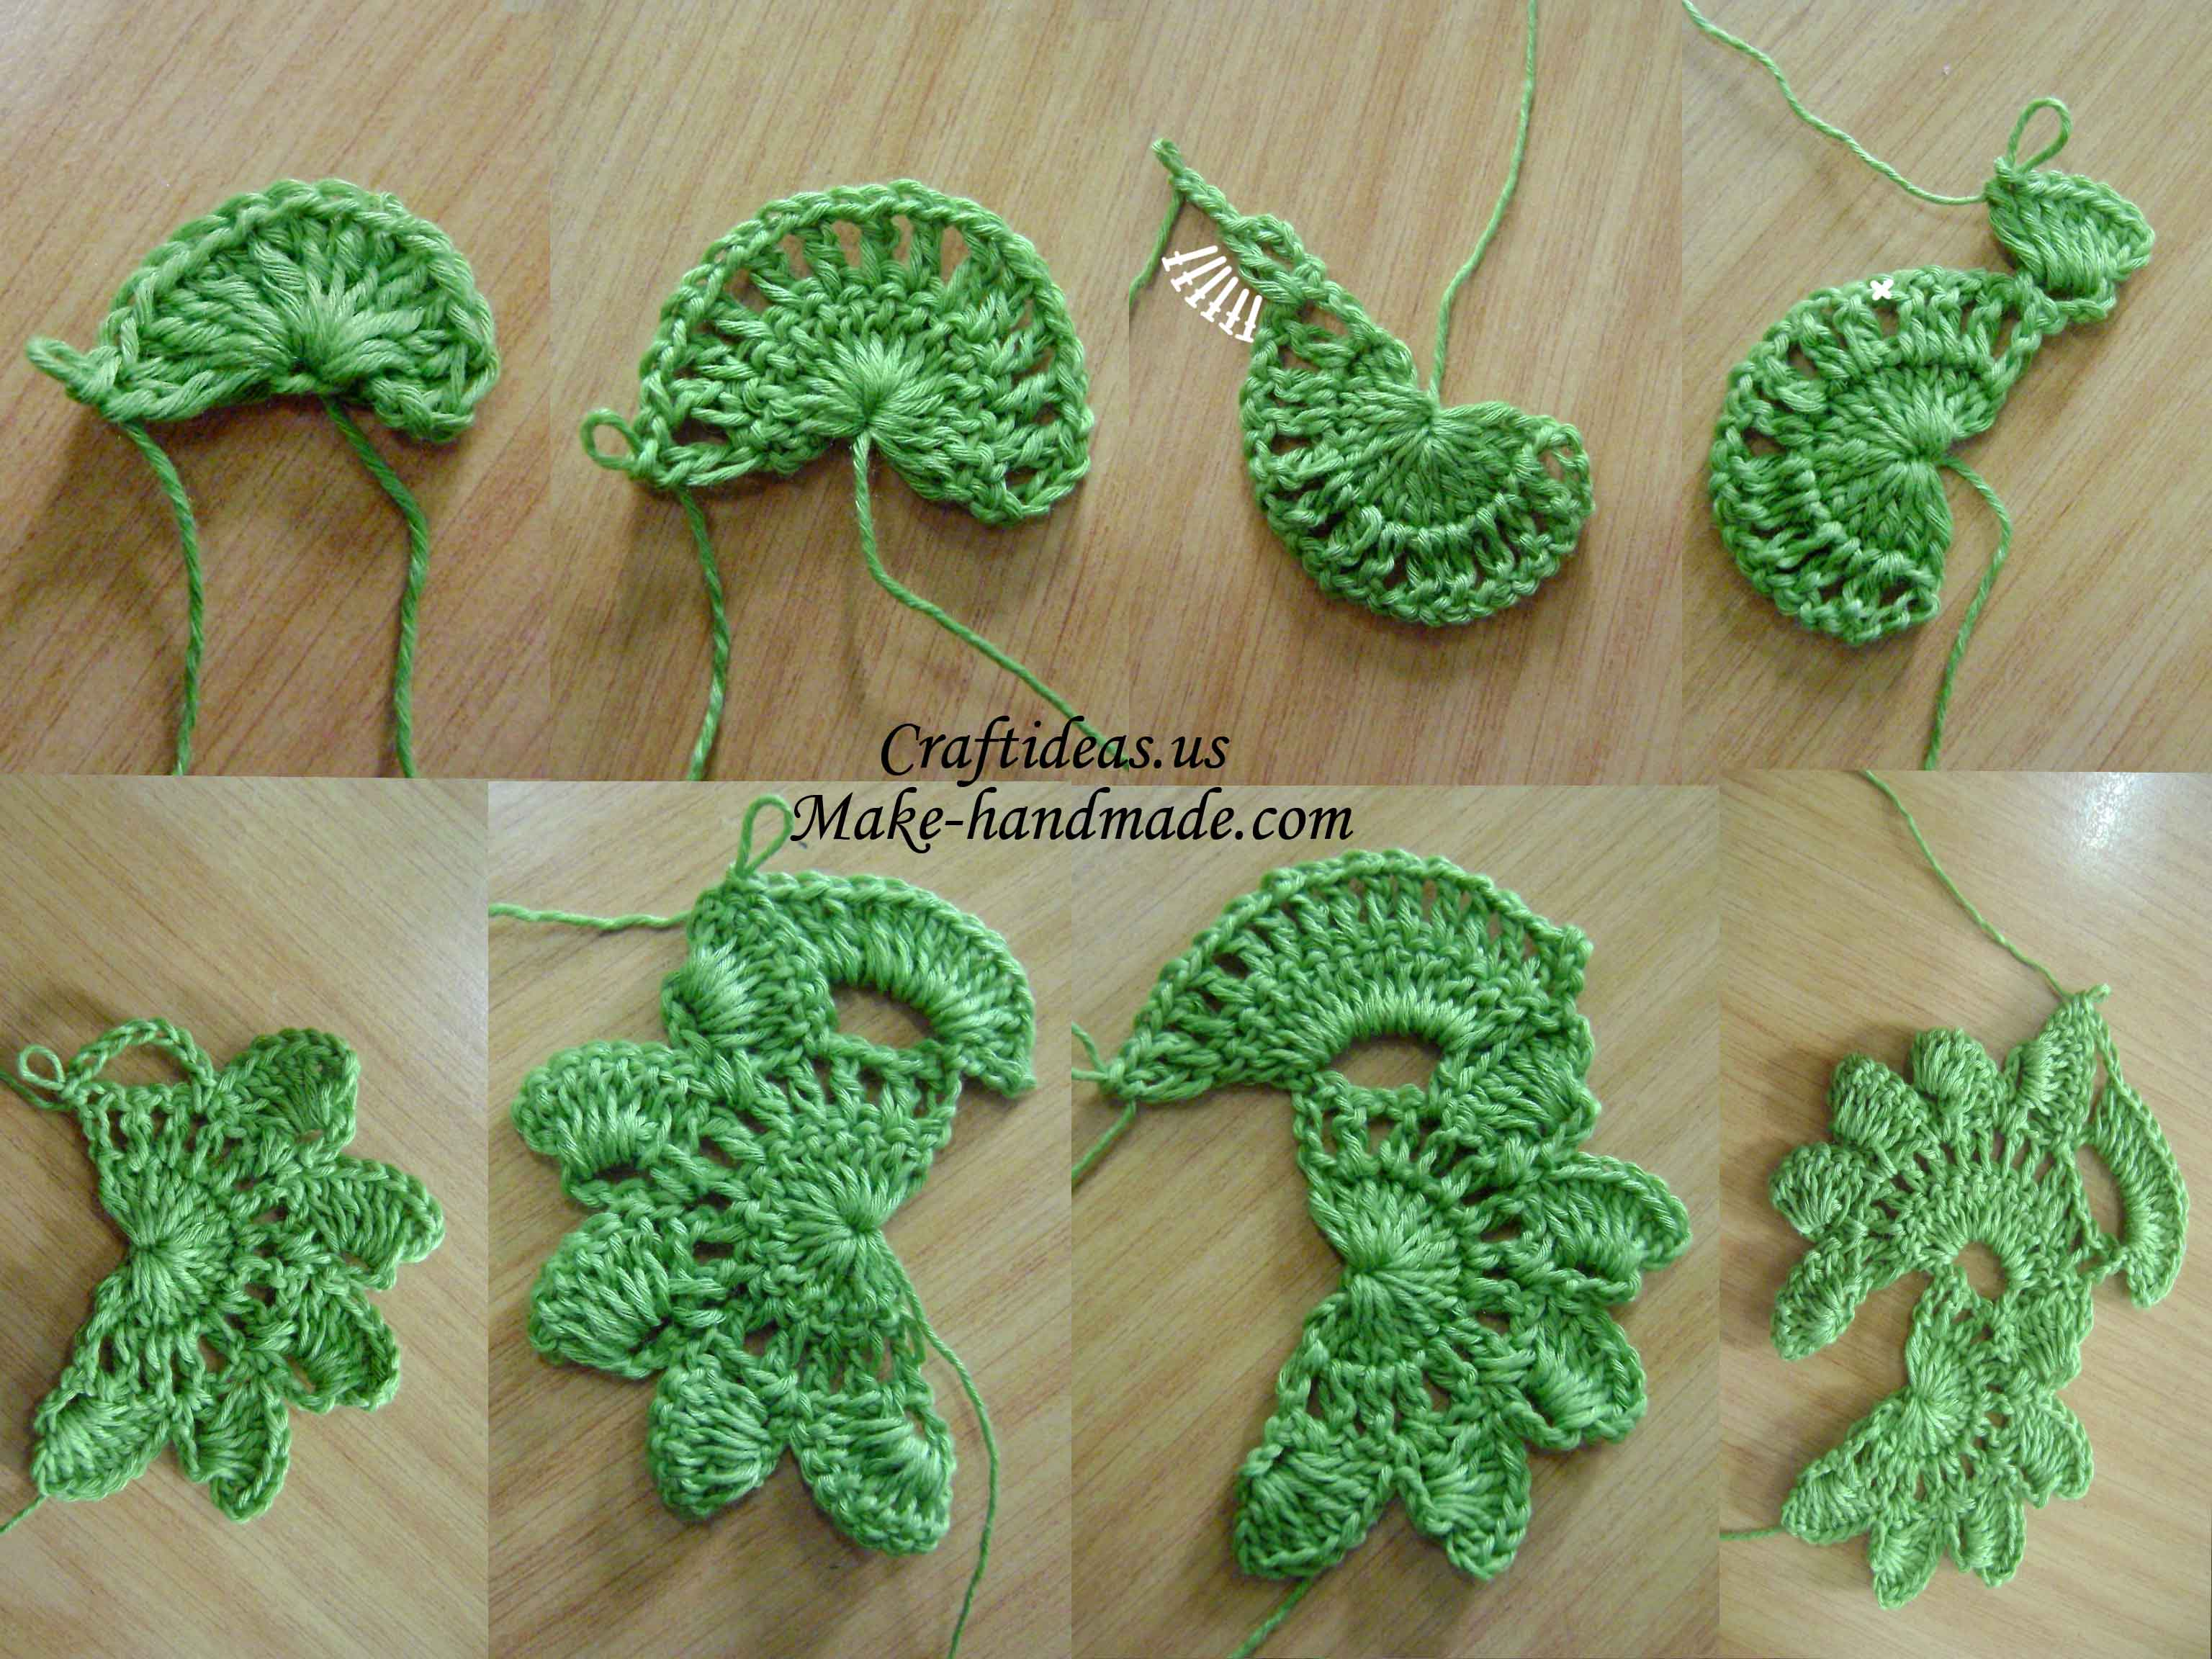 Crochet Patterns Tutorial : Crochet flower for a strip and scarf - Craft Ideas